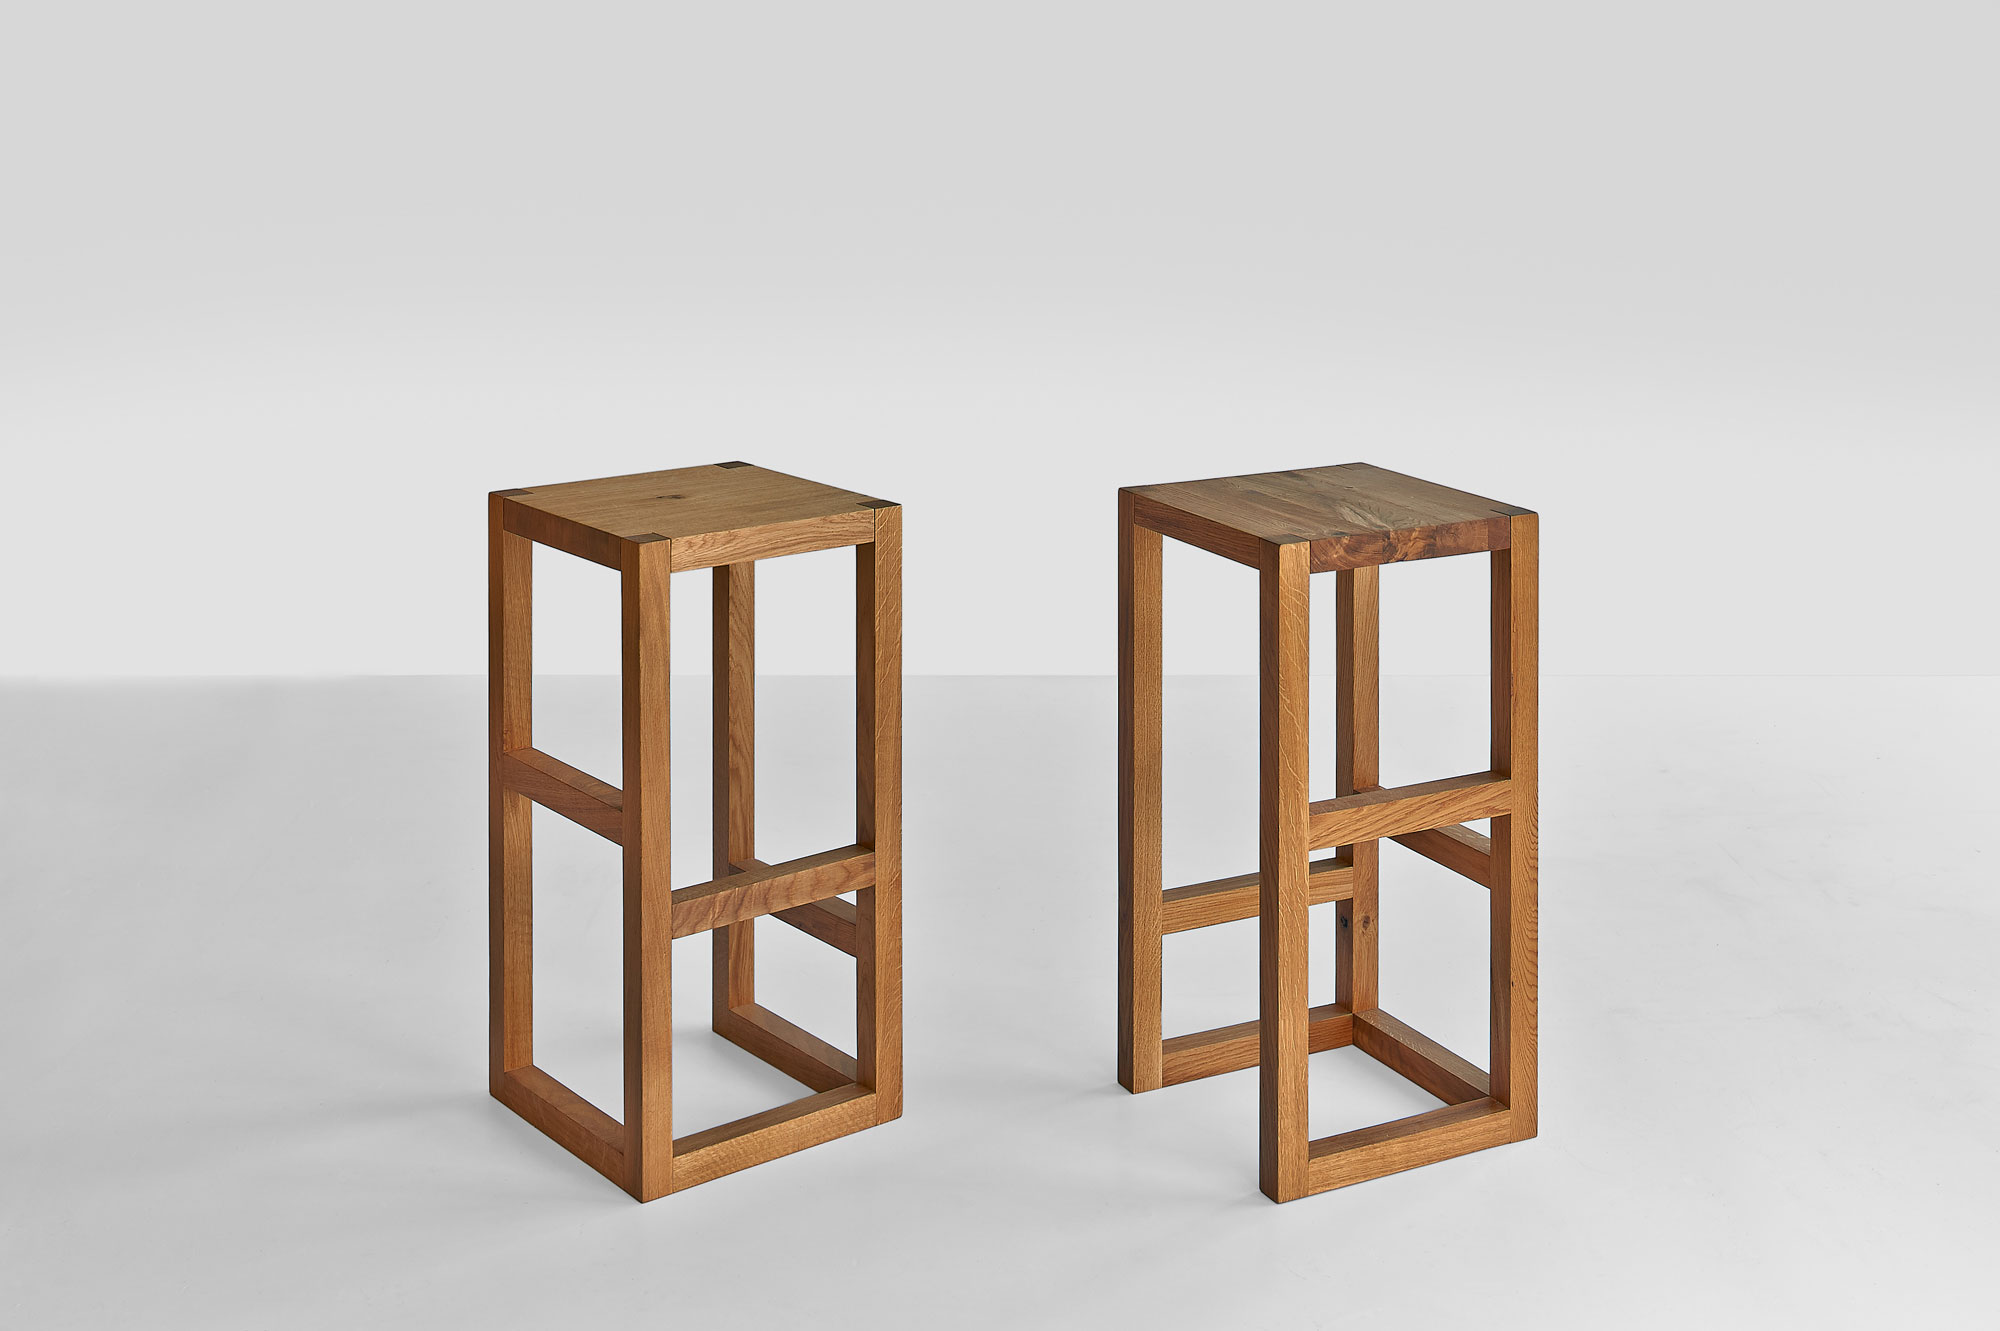 Bar Stool Solid Wood STEP 1488 custom made in solid wood by vitamin design